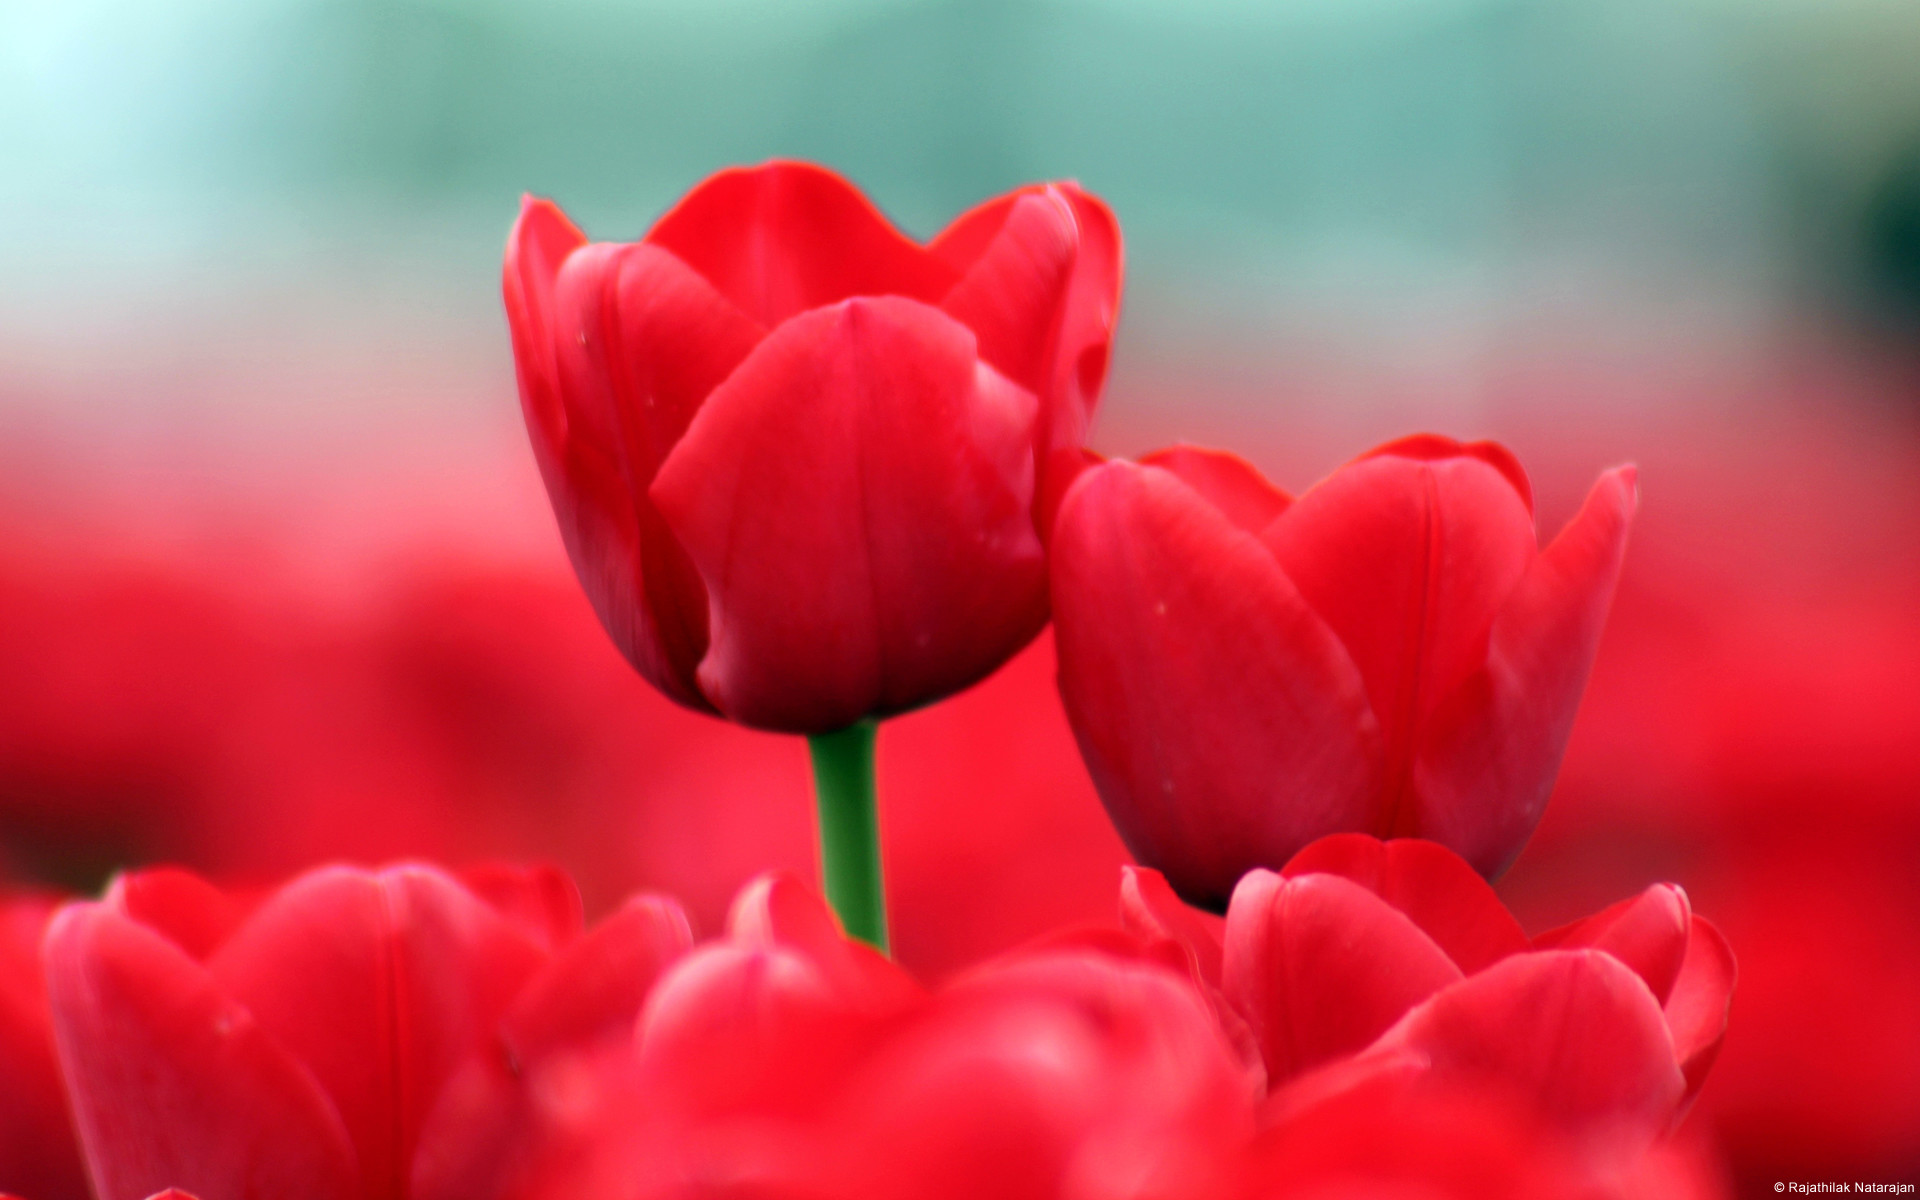 Red Tulips Wallpaper 1